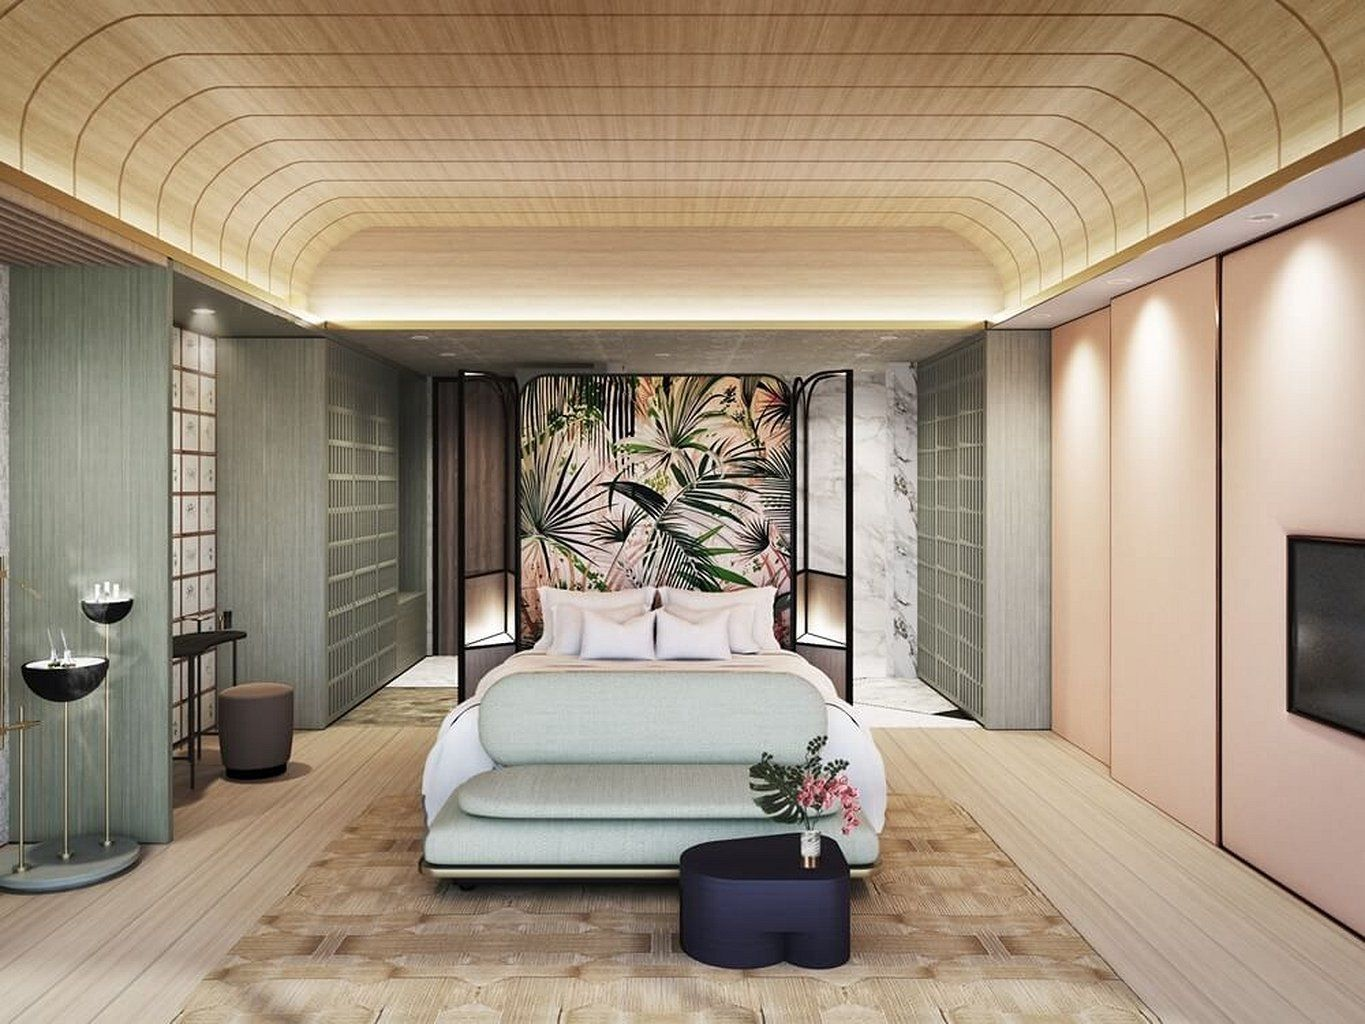 Are You Curious Here You Will Be Able To Find The Best Interior Design Hotel Inspirations Www Del Chambre A Coucher Interieur De Luxe Decoration Interieure